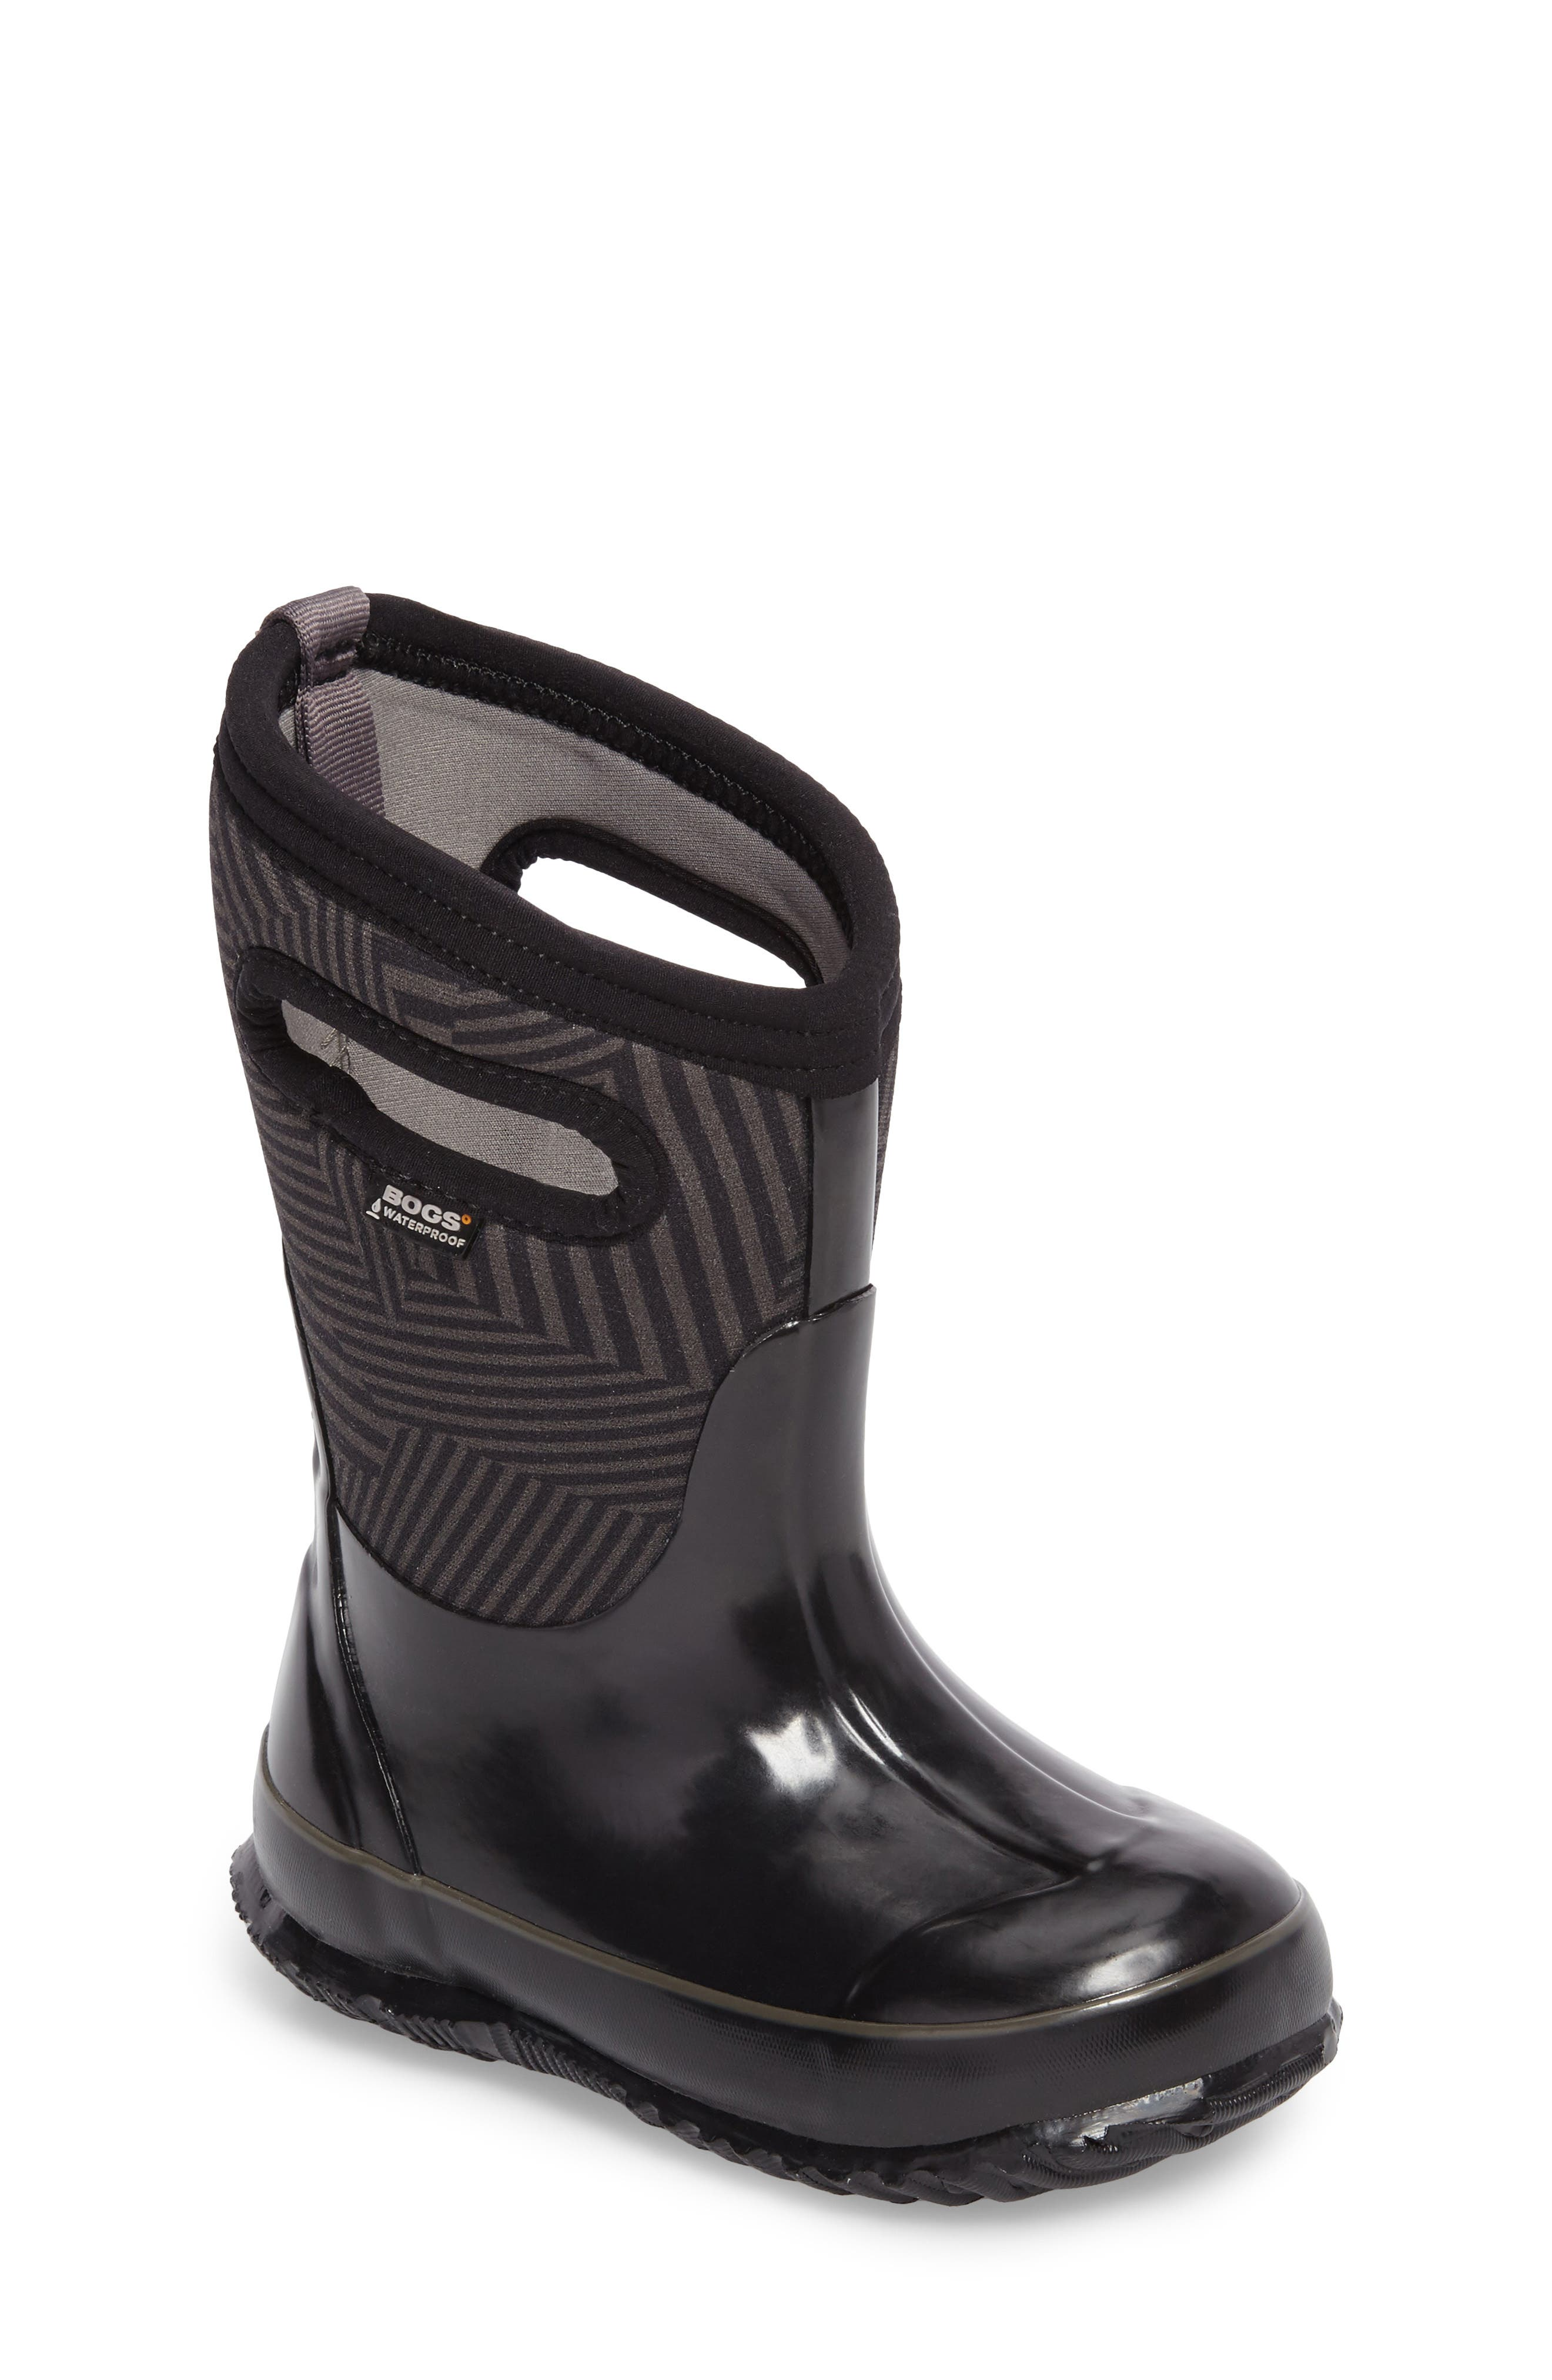 BOGS, Classic Phaser Insulated Waterproof Boot, Main thumbnail 1, color, BLACK MULTI